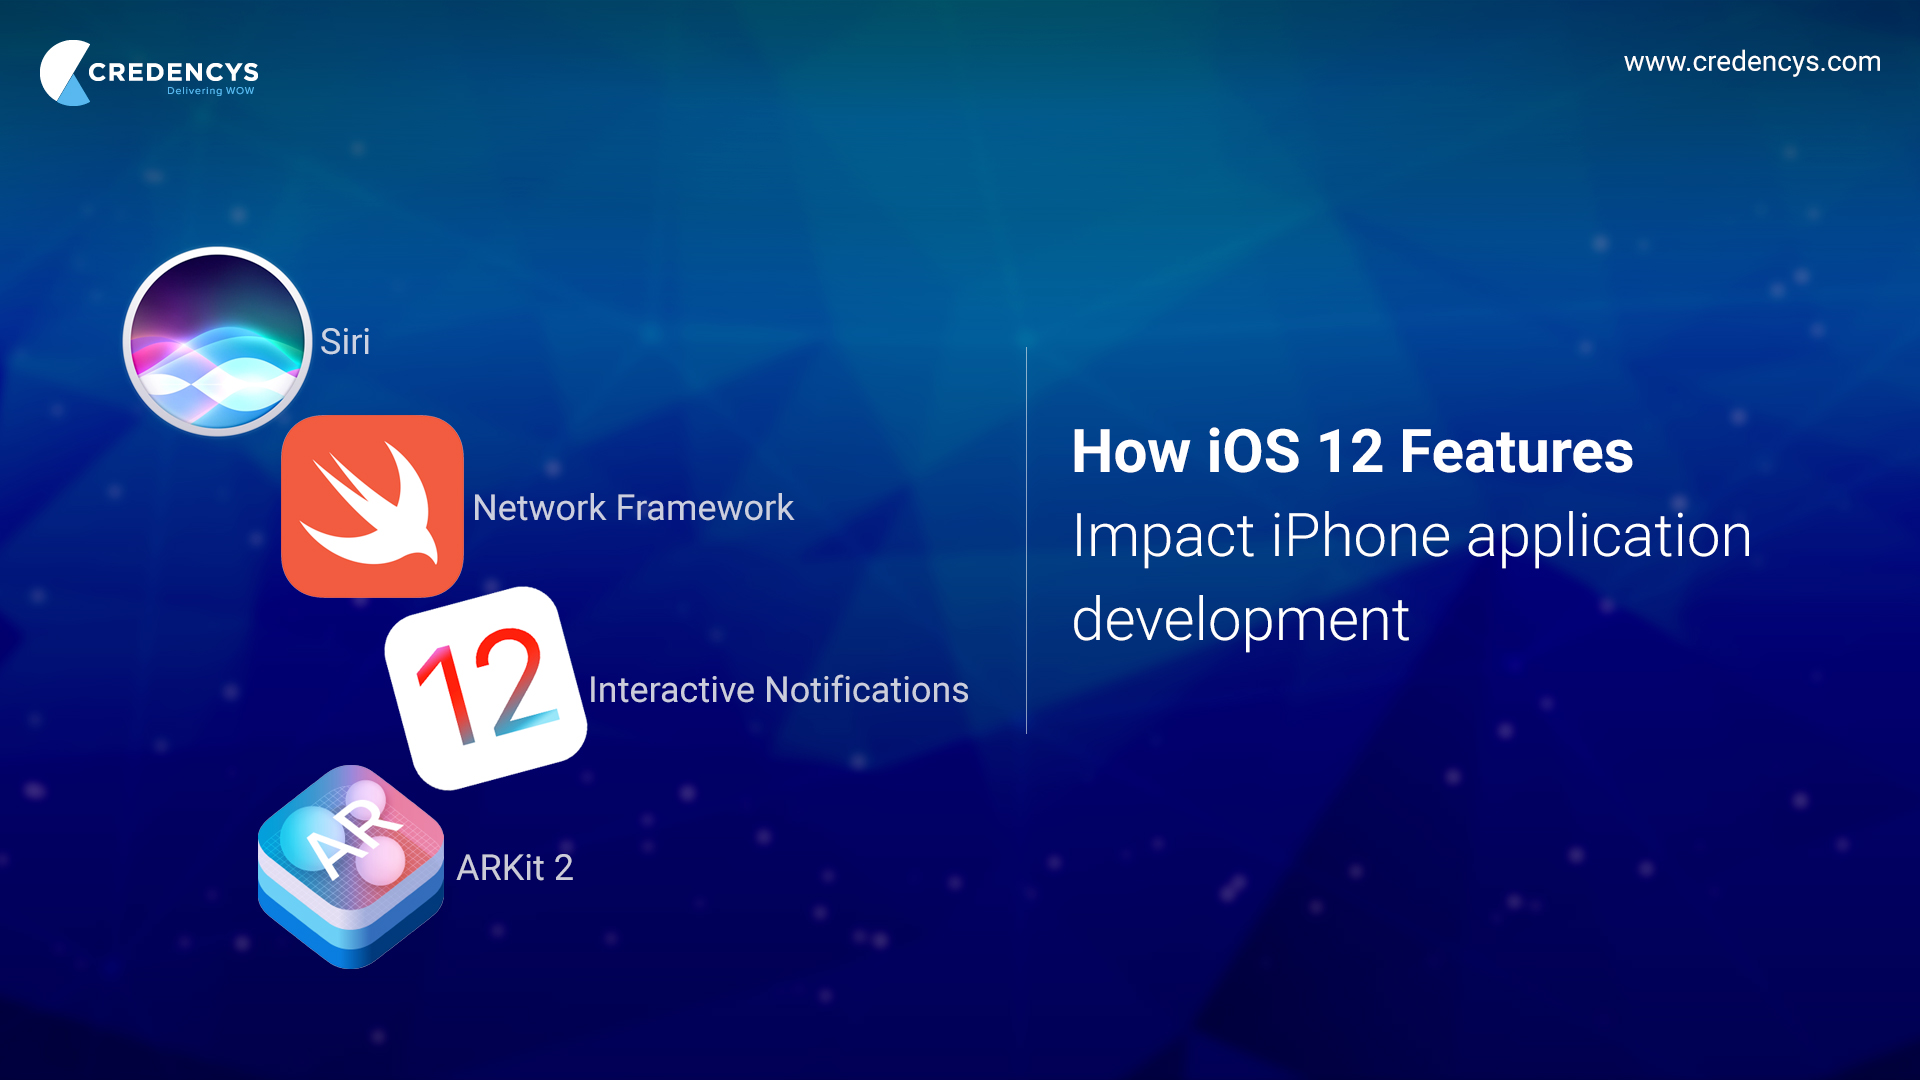 How iOS 12 Features Impact iPhone Application Development